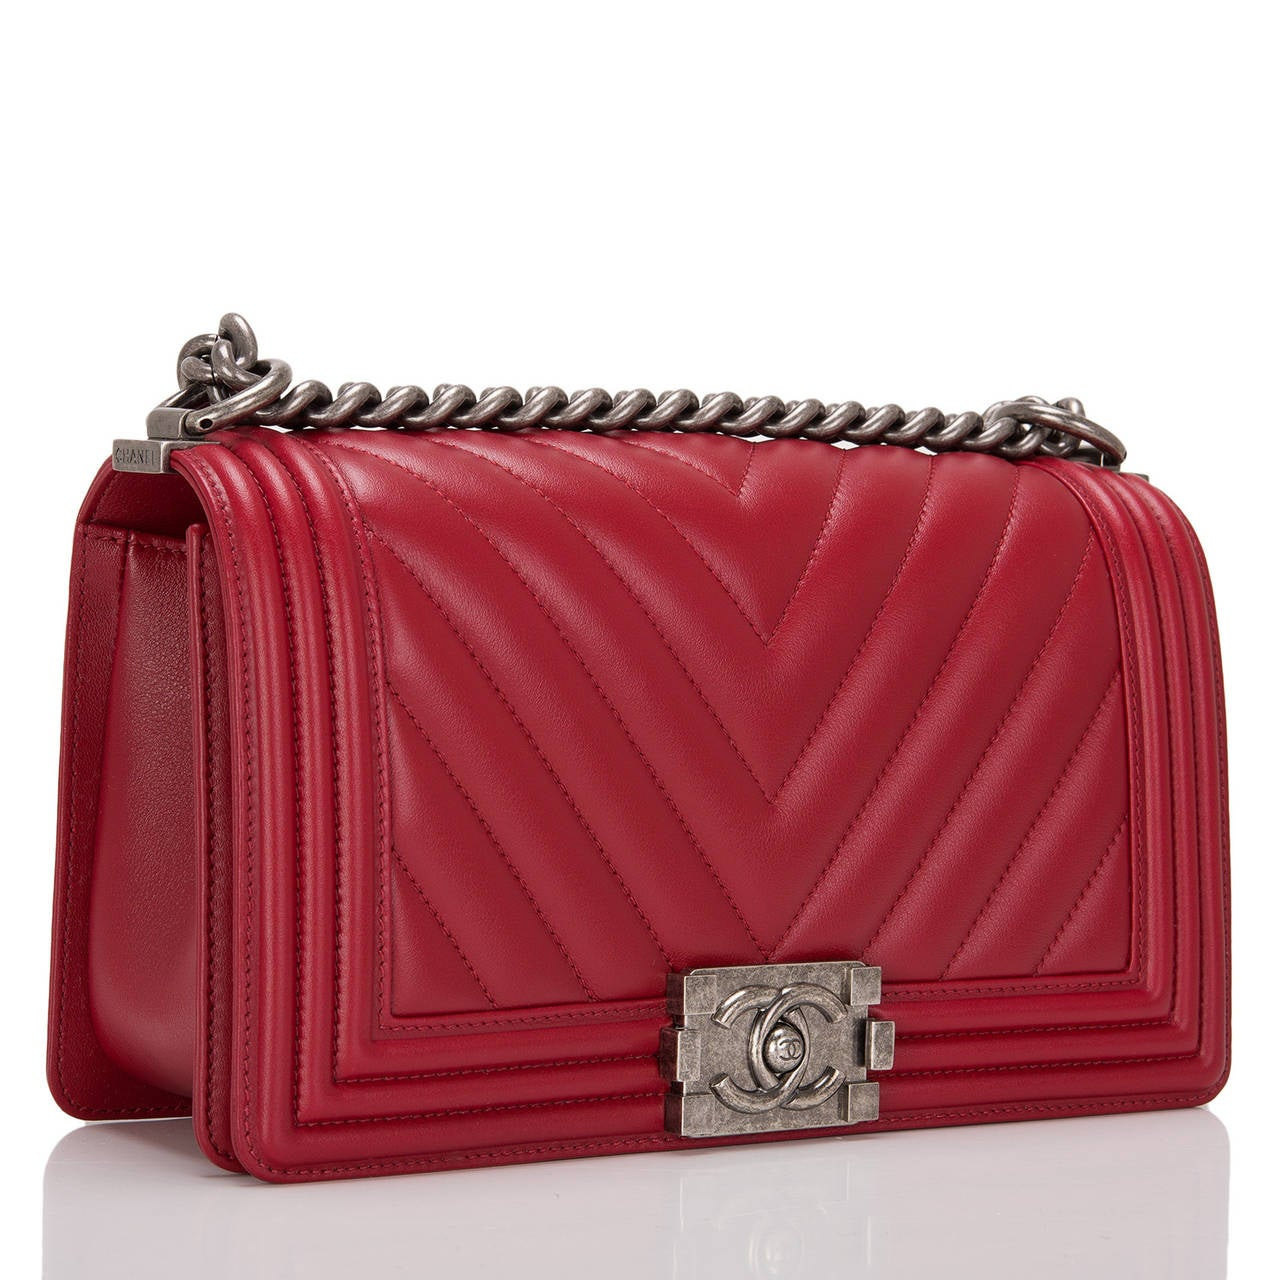 d517d38cfd3b6f Chanel Boy Bag Inside Red | Stanford Center for Opportunity Policy ...